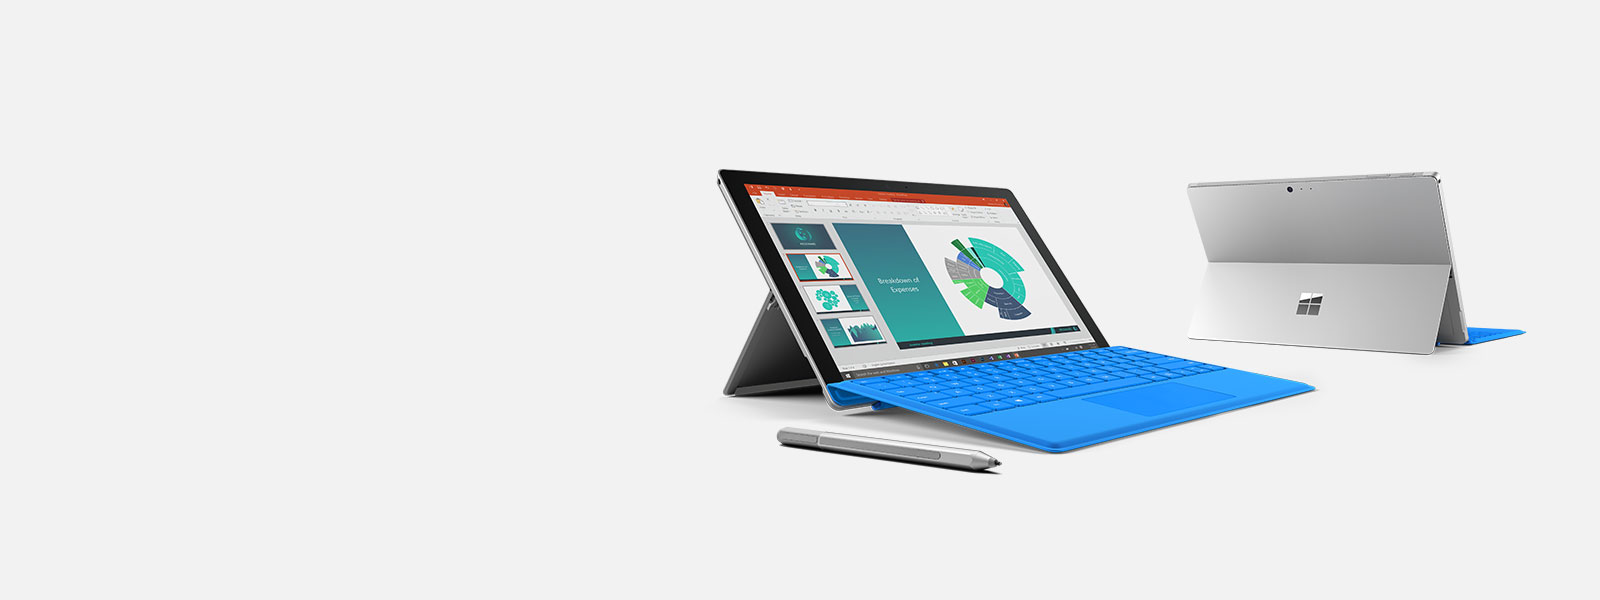 Dispositivi Surface Pro 4 e penna per Surface